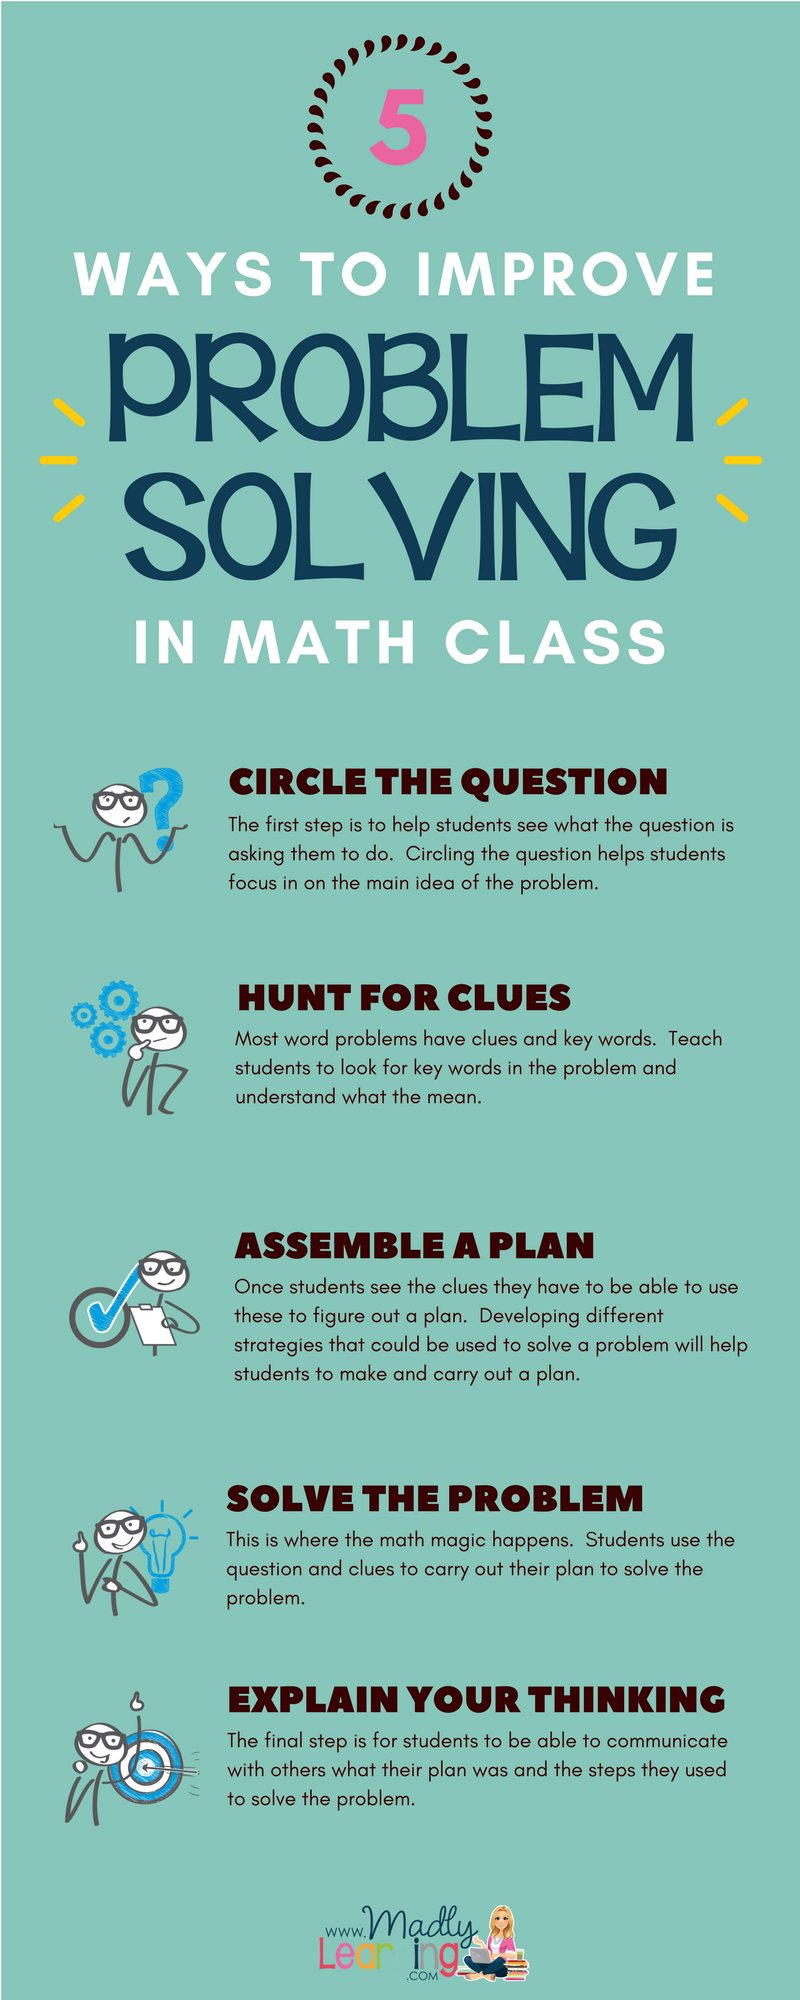 what website helps you solve math problems